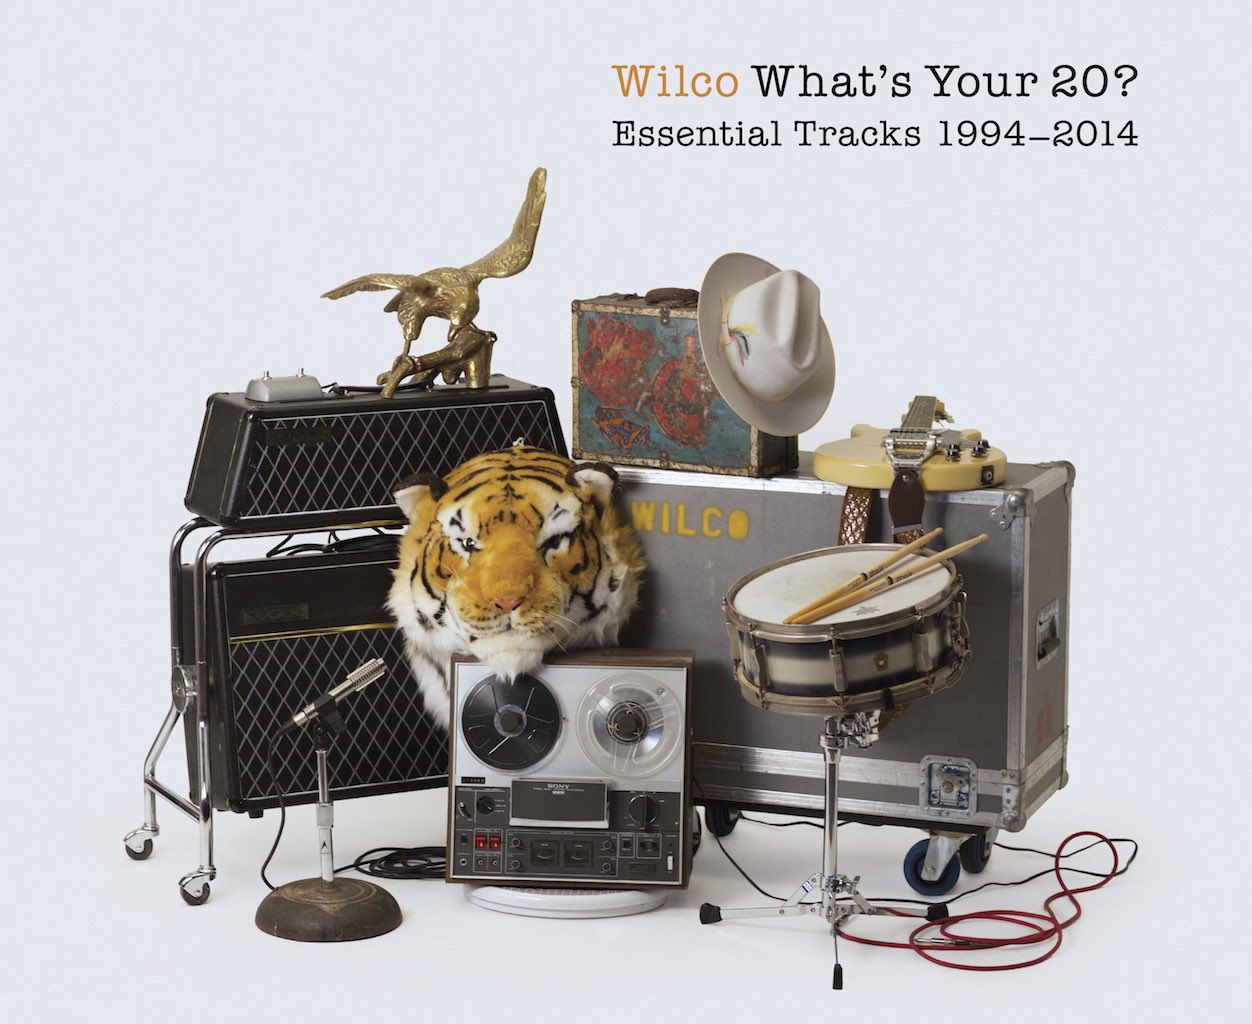 Wilco - Whats Your 20-1 - Version 2